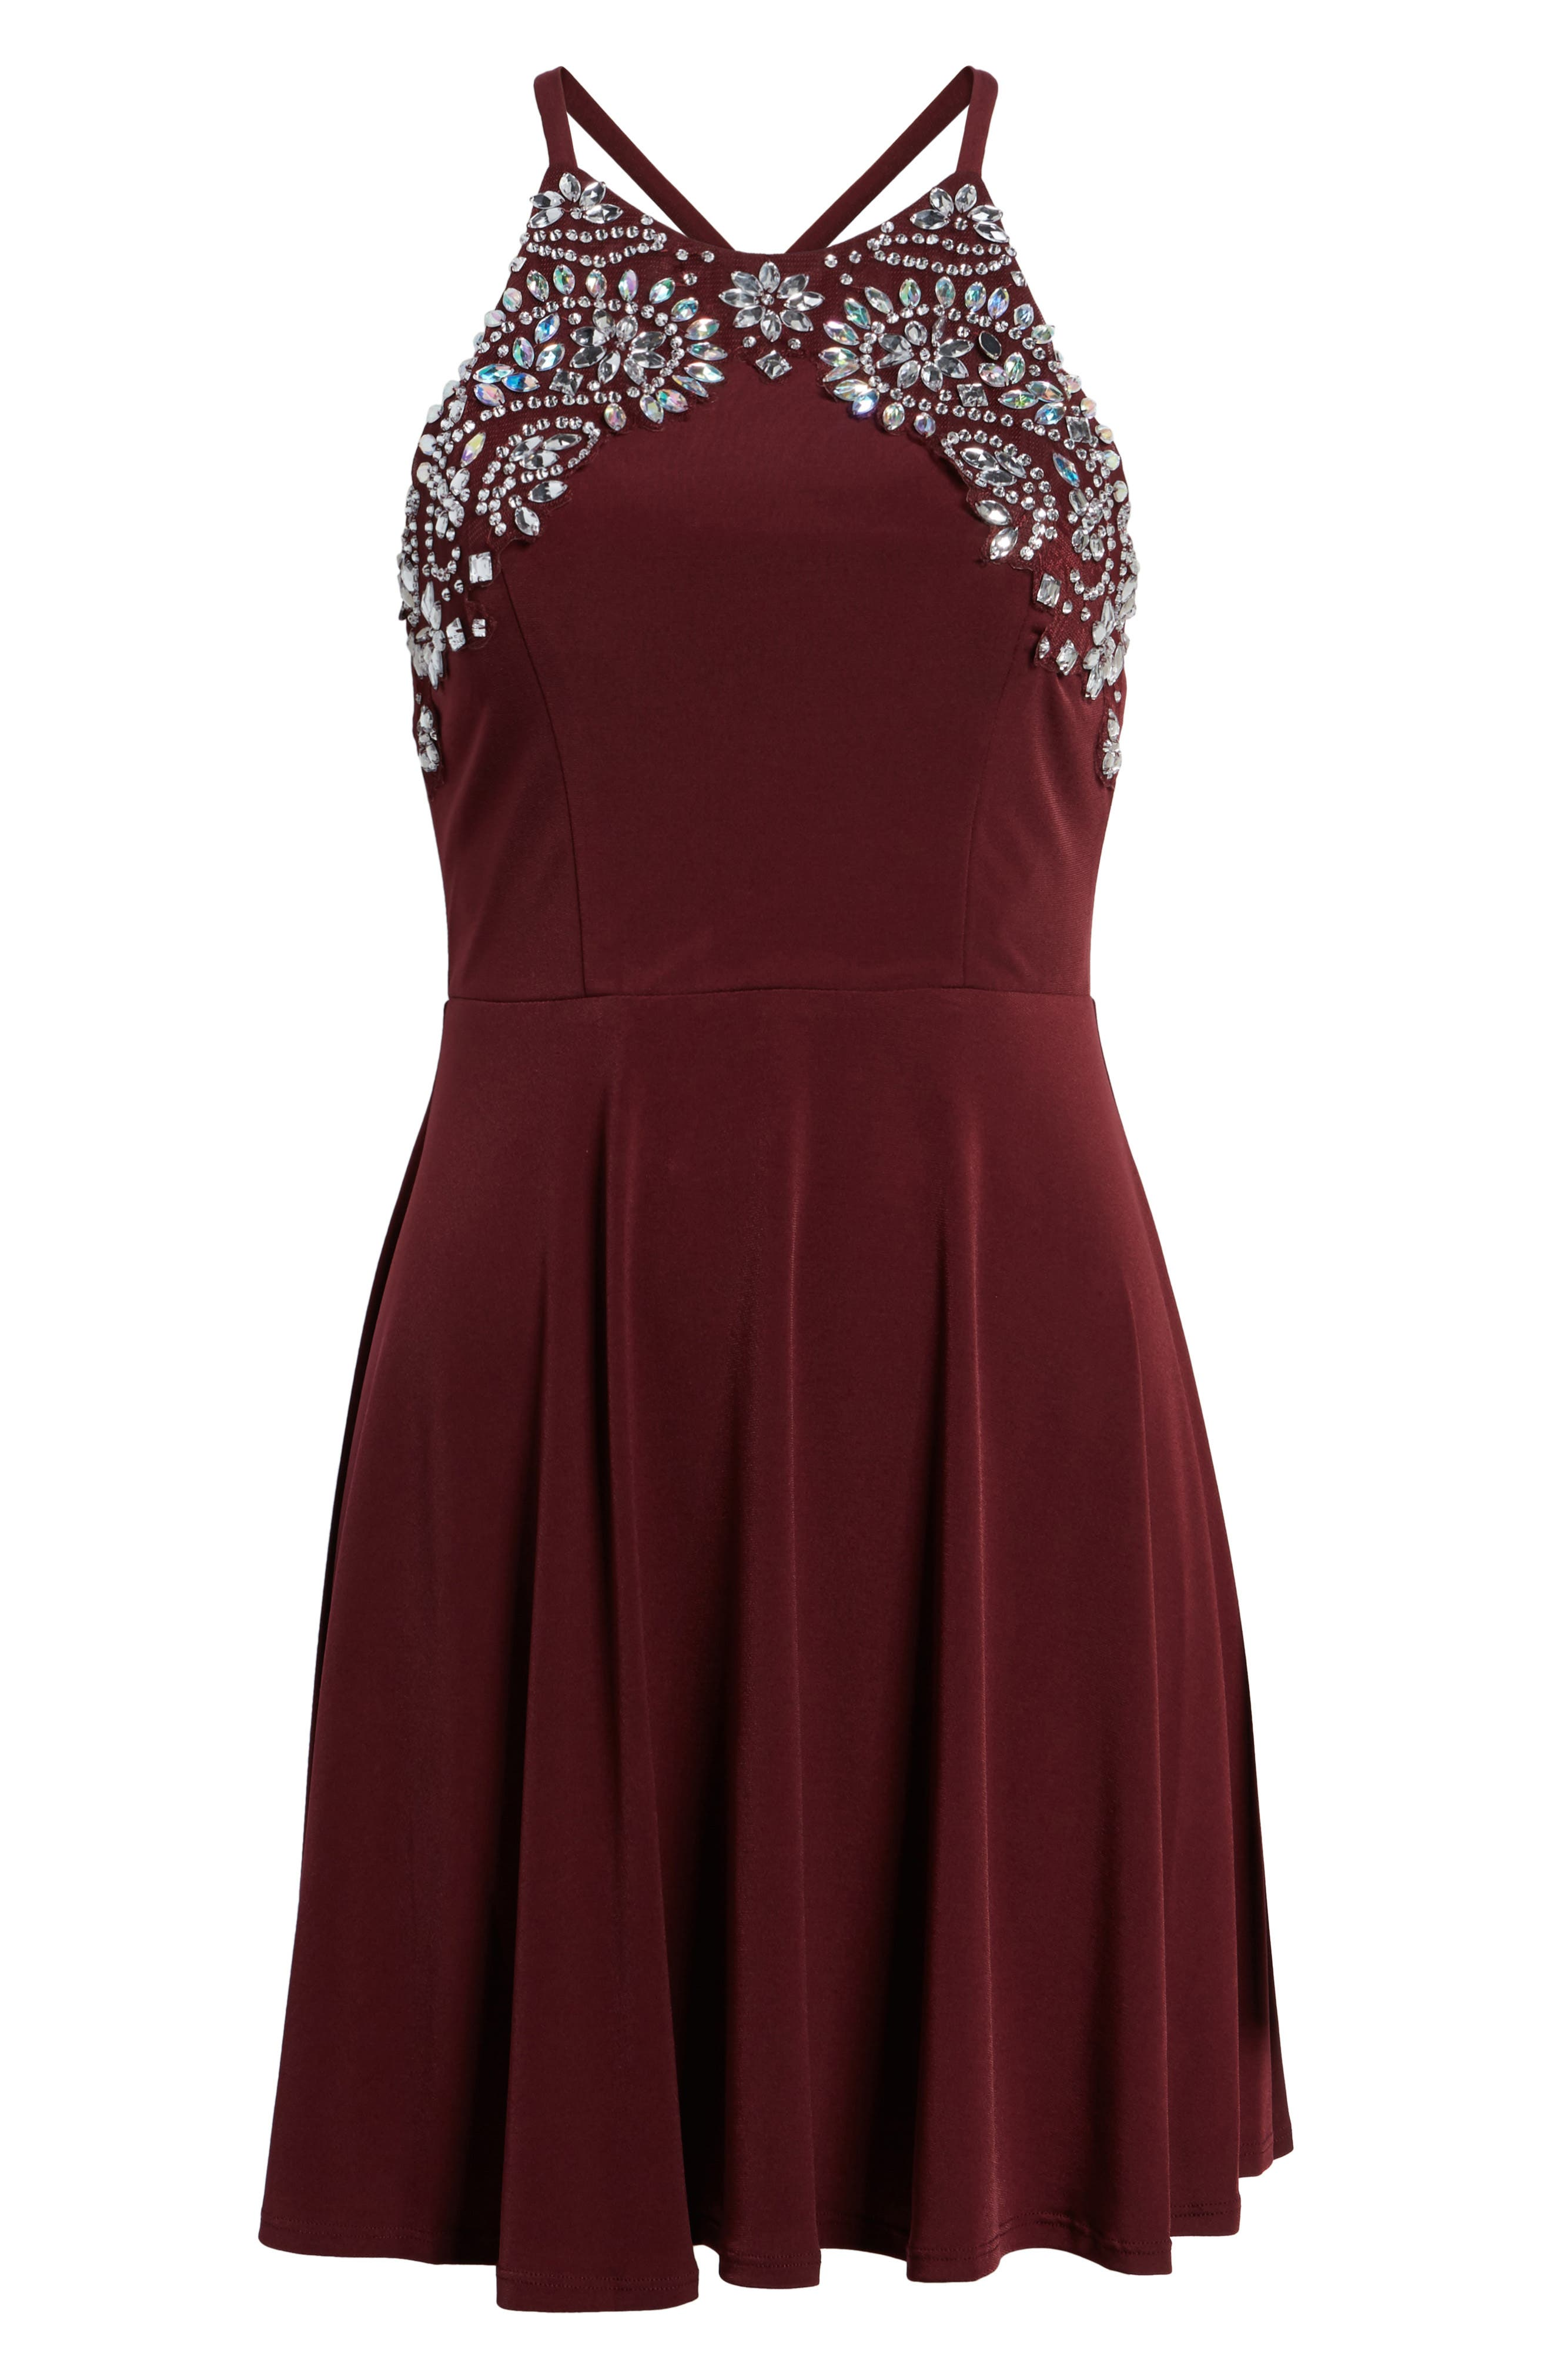 Crystal Halter Dress,                             Alternate thumbnail 6, color,                             WINE